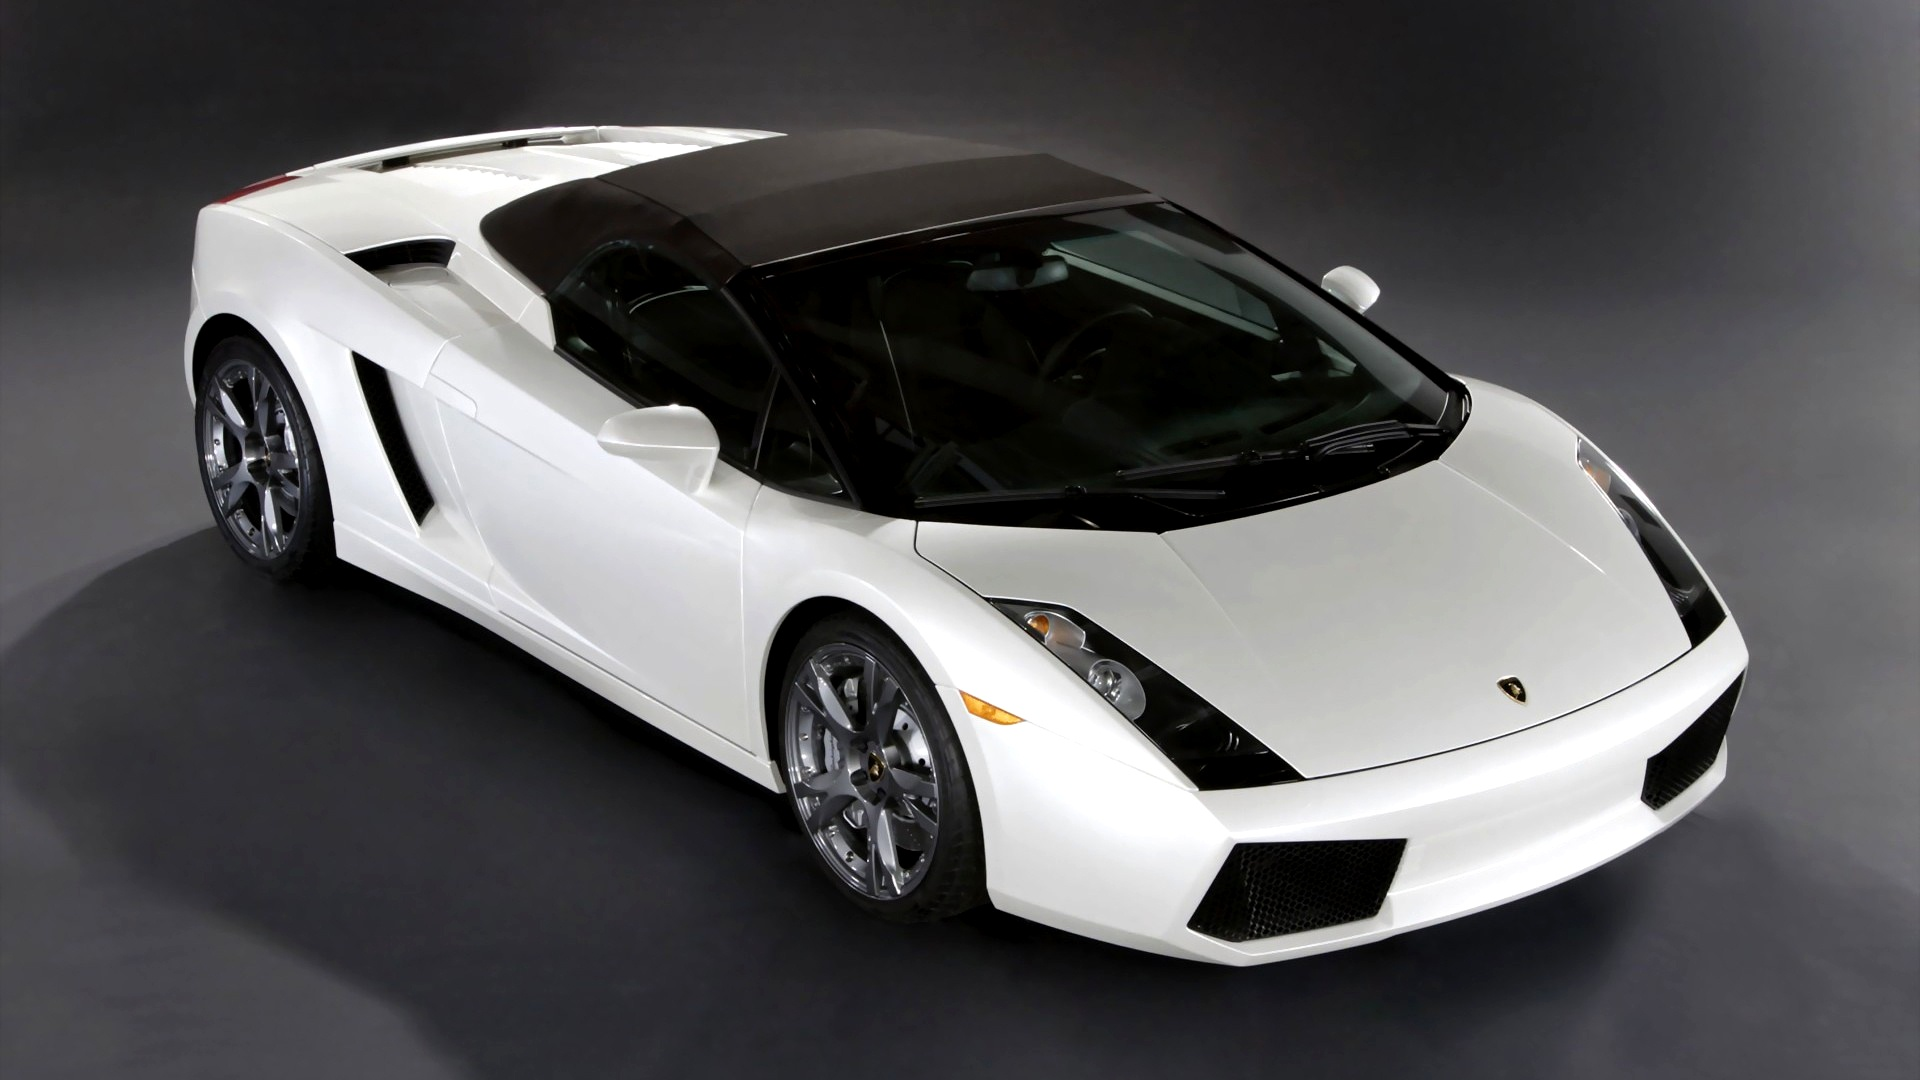 Lamborghini Hd Wallpapers 1080p Wallpapersafari